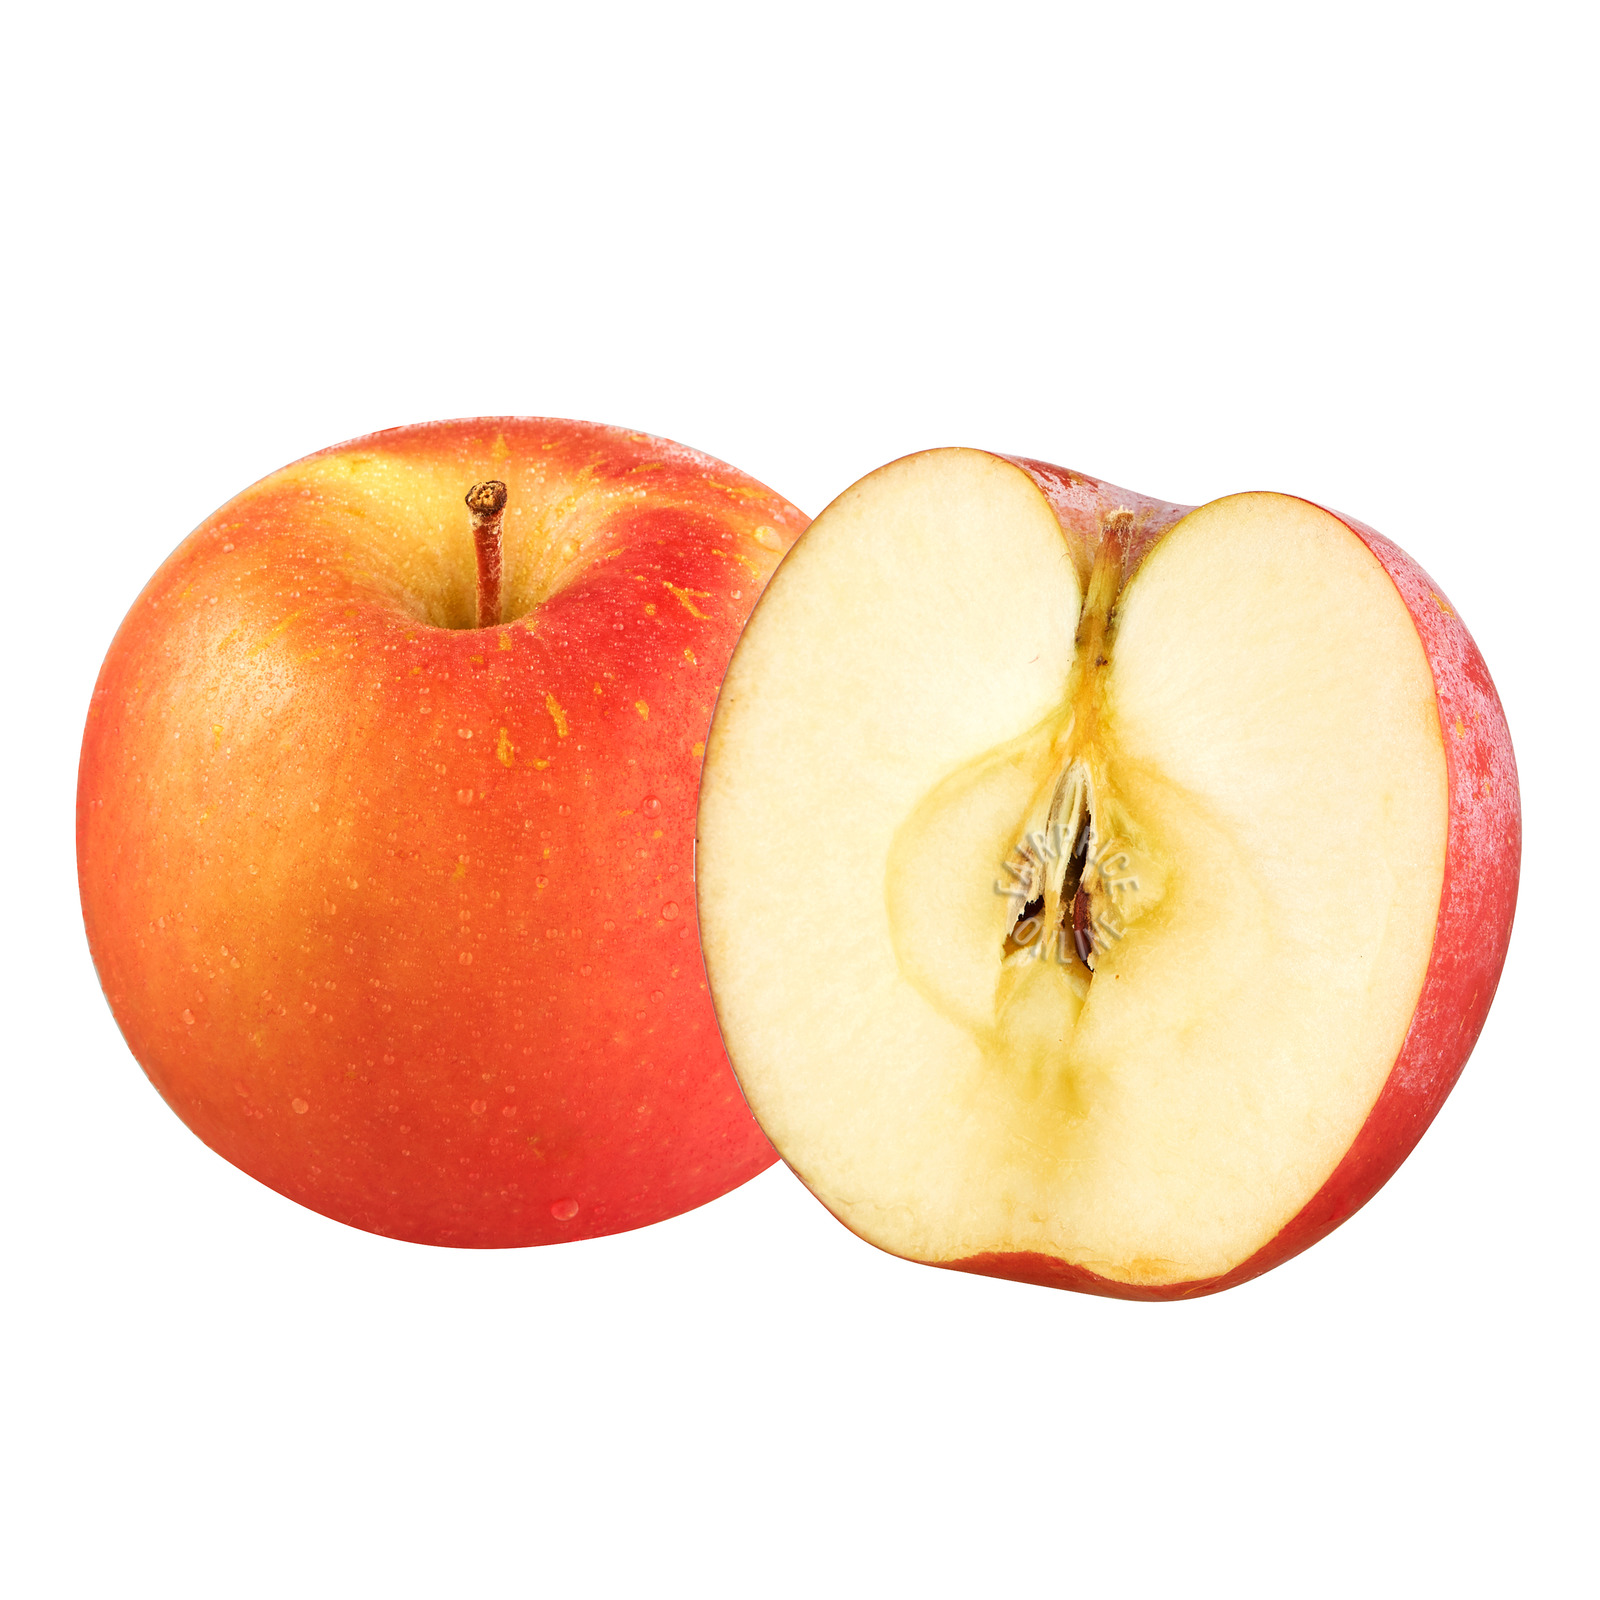 USA Organic Apples